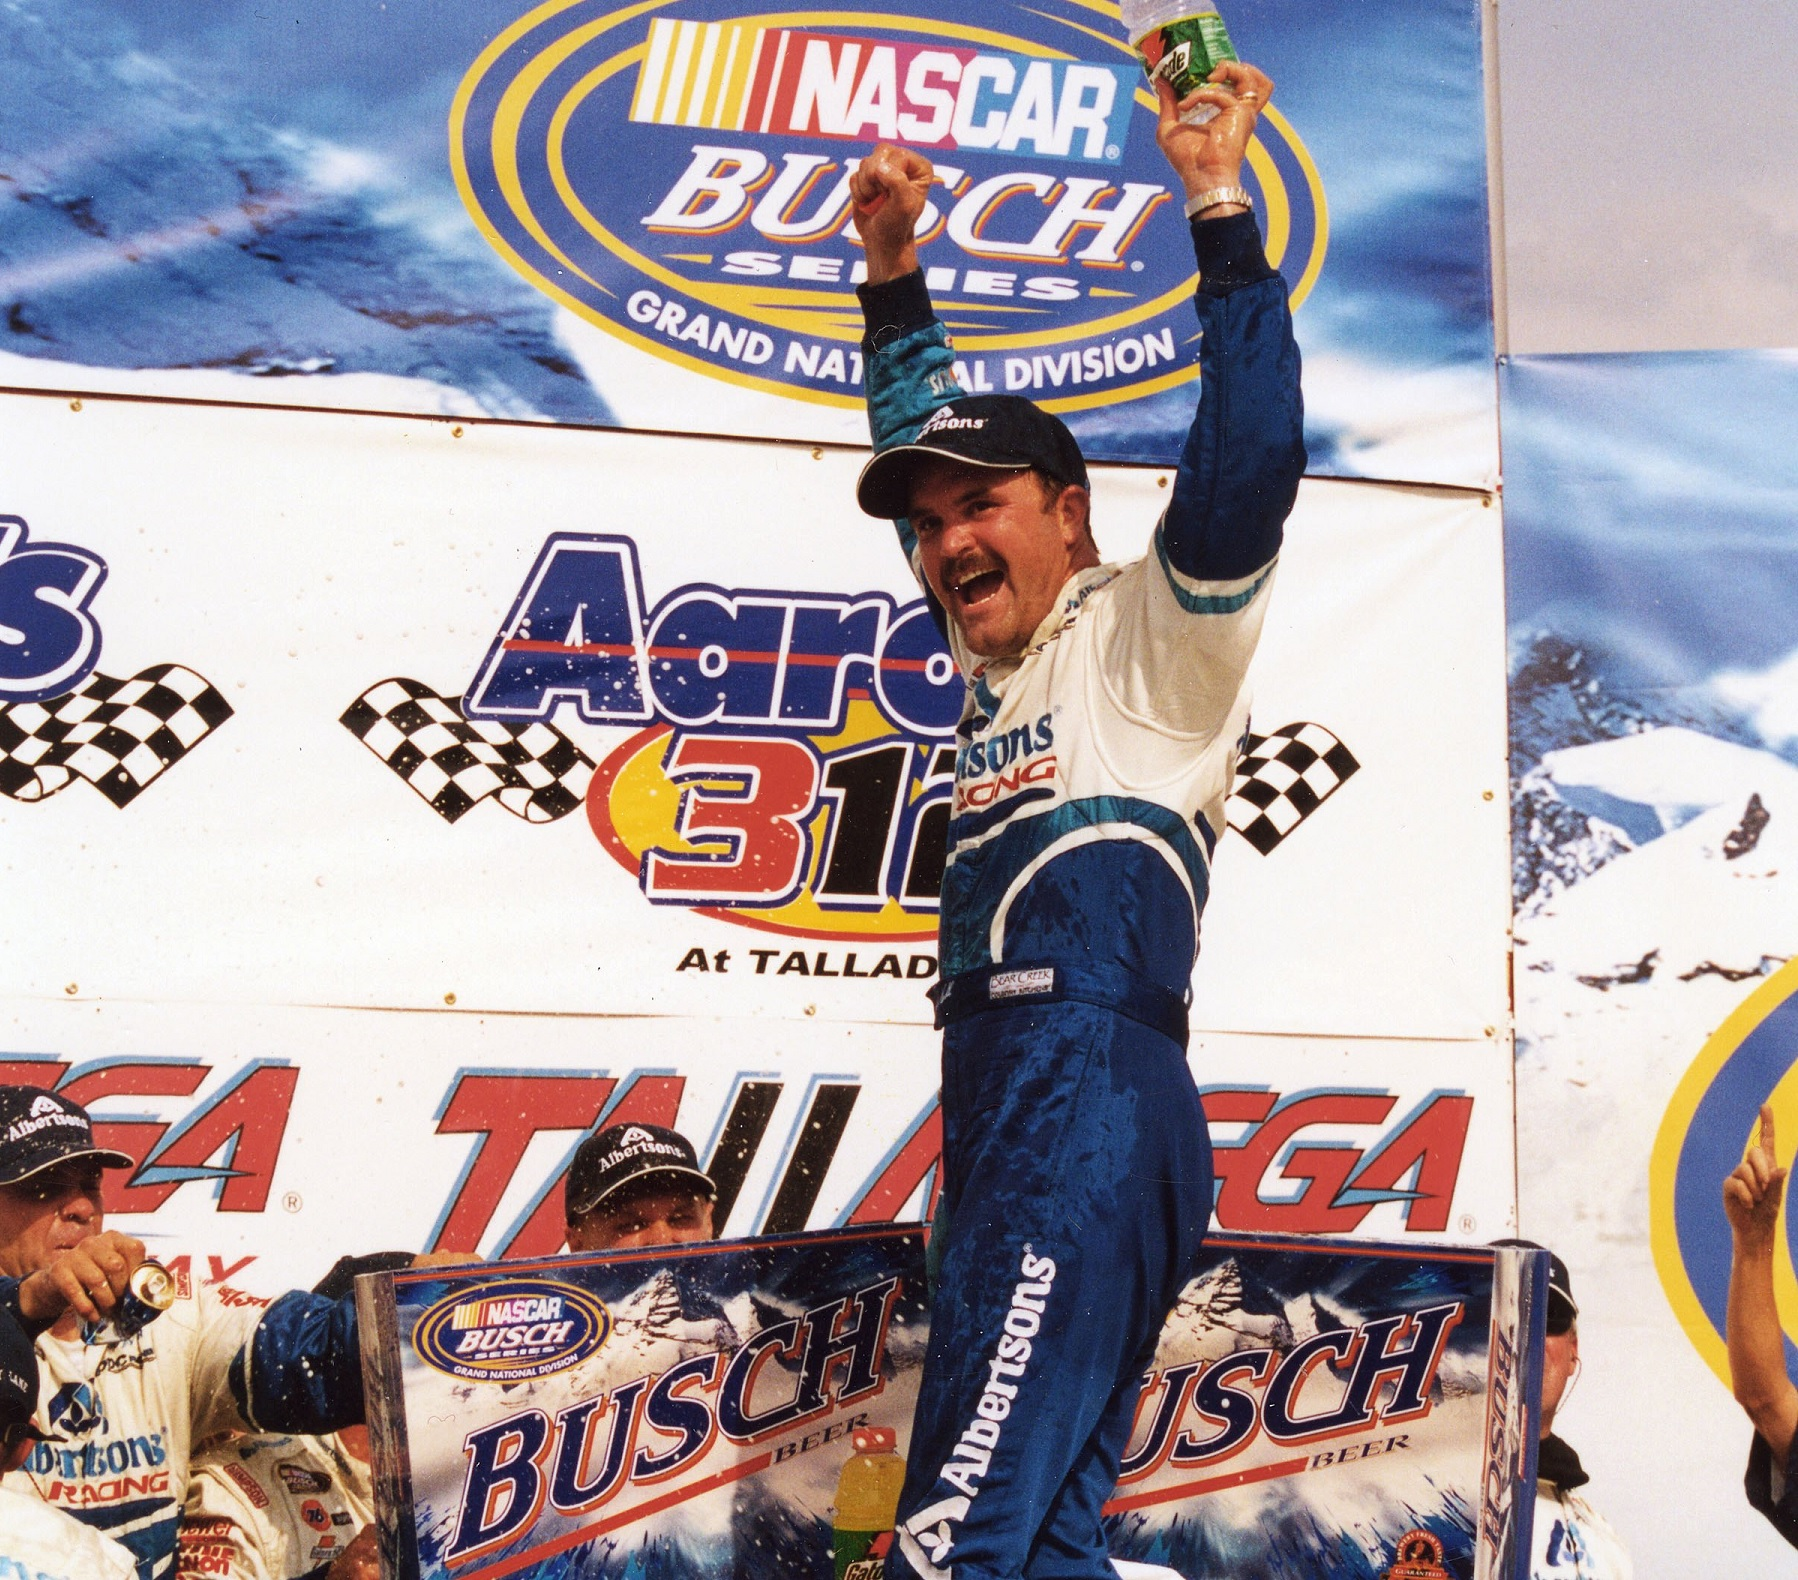 April 20 Today In Jayskis Nascar History Born october 29, 1958) is the third wife and widow of dale earnhardt. april 20 today in jayskis nascar history